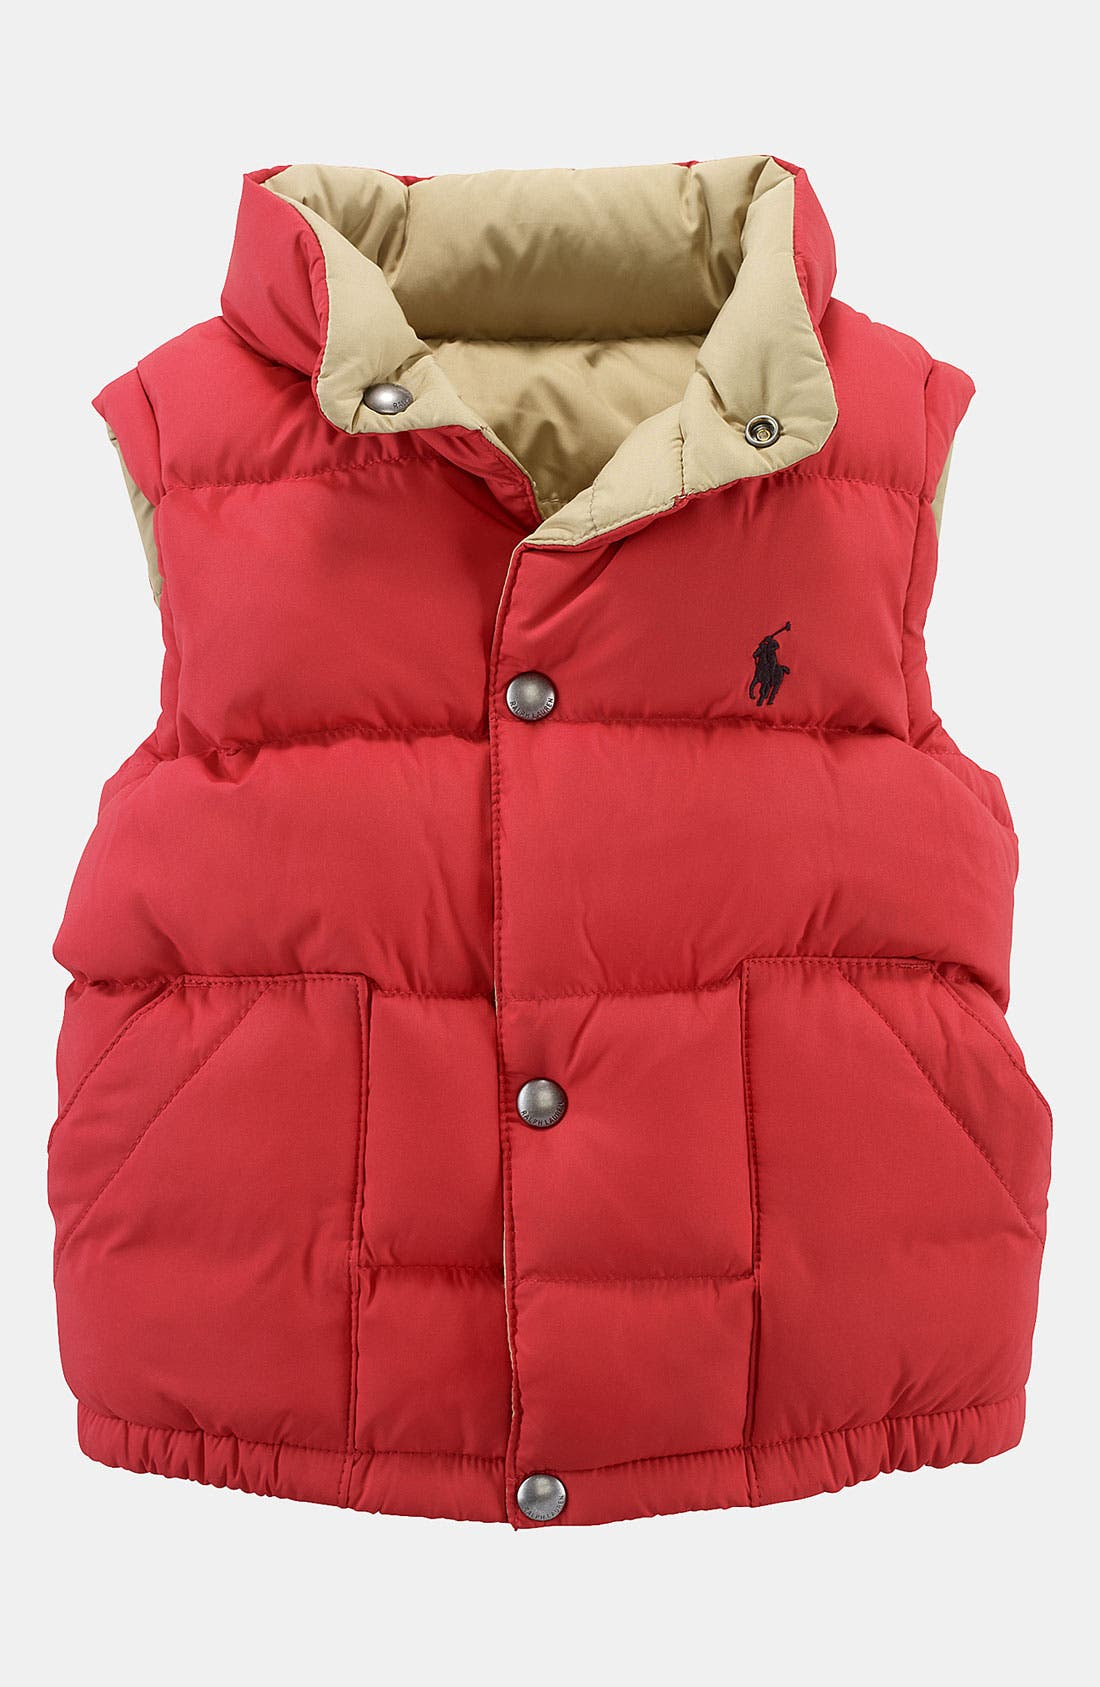 Main Image - Ralph Lauren Reversible Puffer Vest (Toddler)